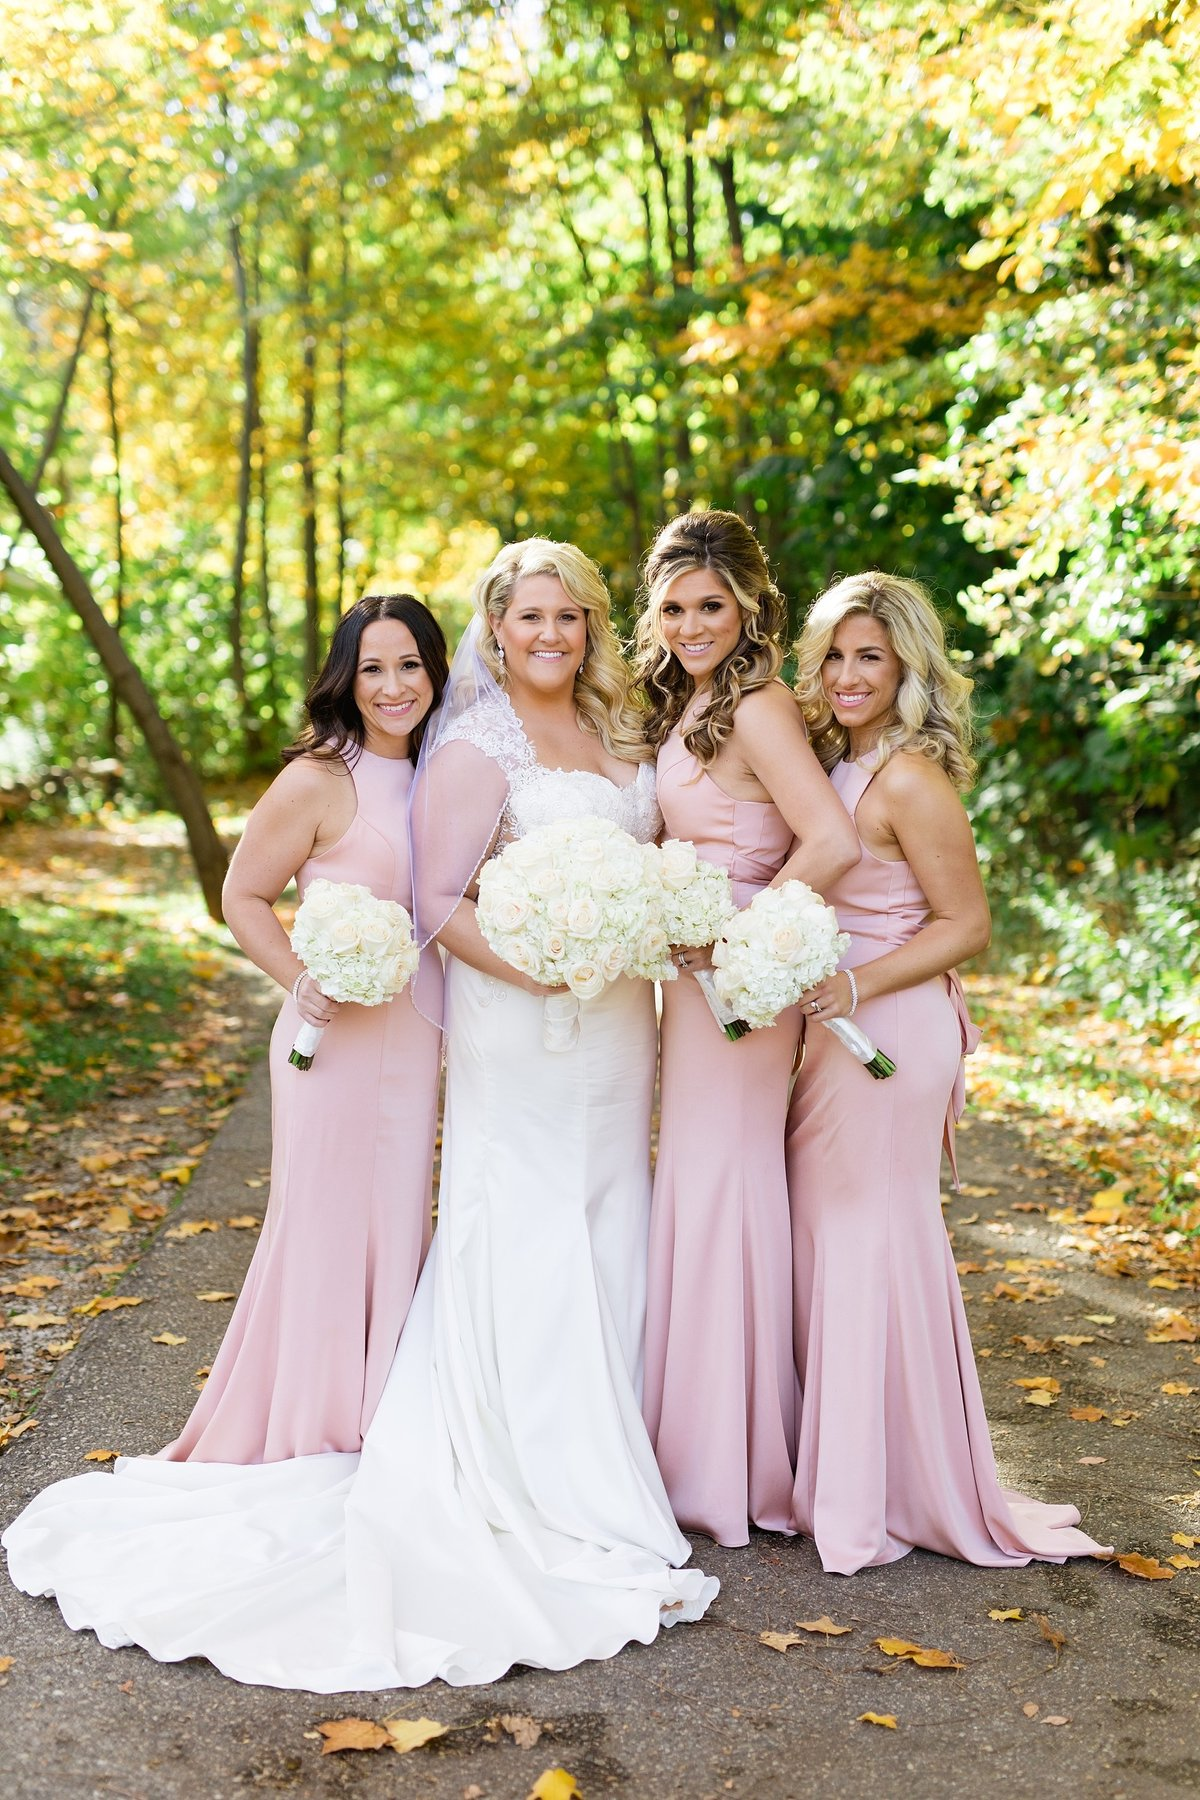 Carly-Johnny-Elegant-Fall-Michigan-Wedding-Breanne-Rochelle-Photography56